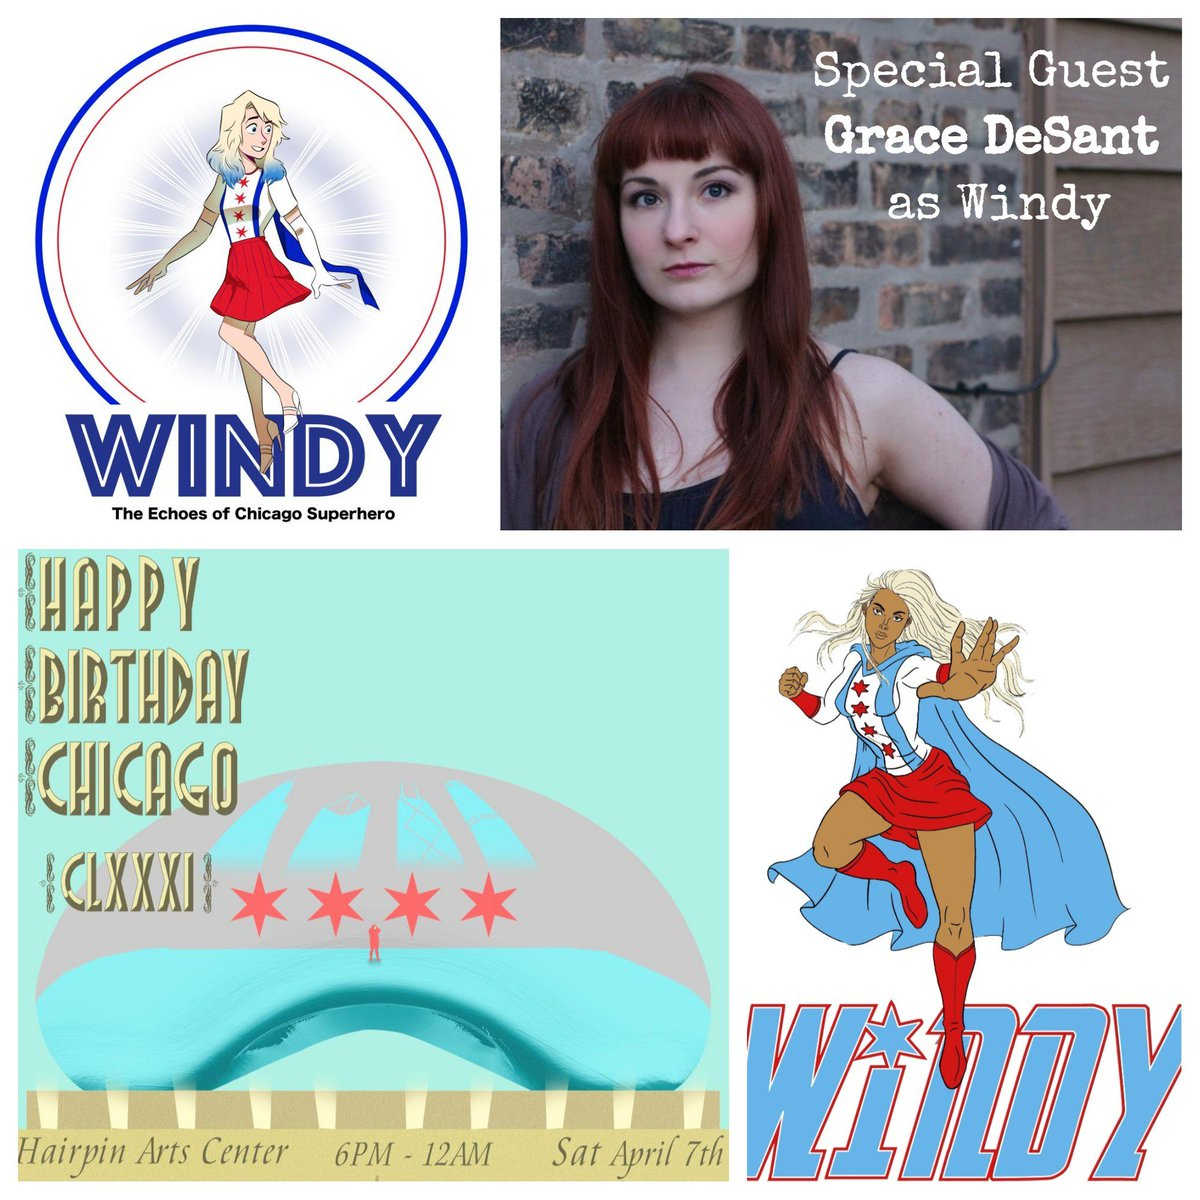 Come see @EchoesWindy at Happy Birthday Chicago at @HairpinArts on April 7th 6pm-12am! bit.ly/HBChicago18 #ChicagoArt #cosplay